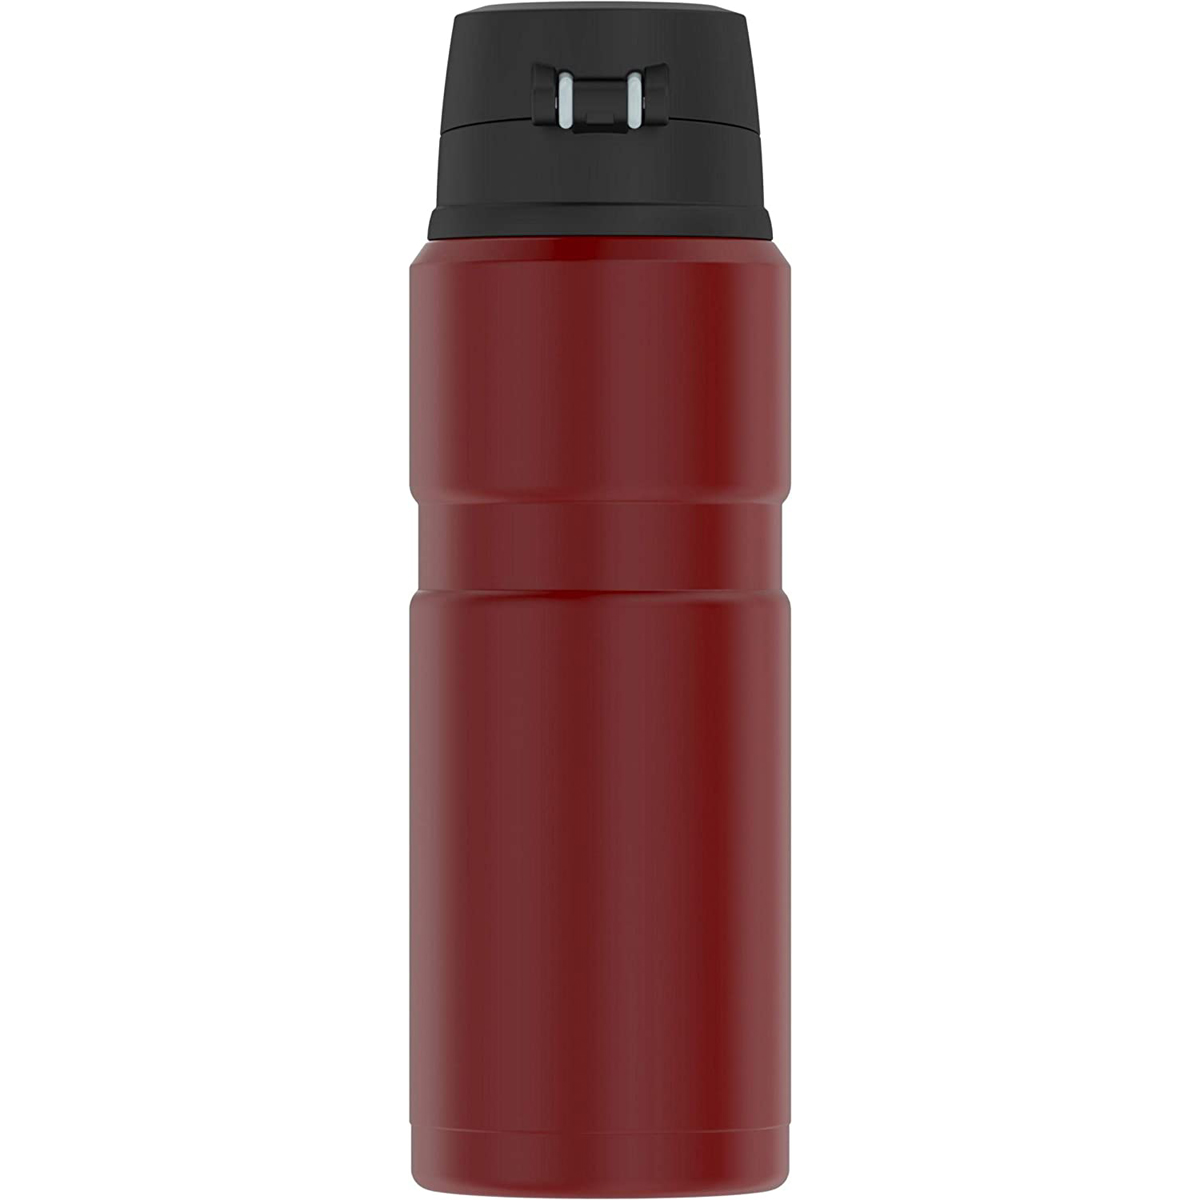 thumbnail 13 - Thermos 24 oz. Stainless King Vacuum Insulated Stainless Steel Drink Bottle